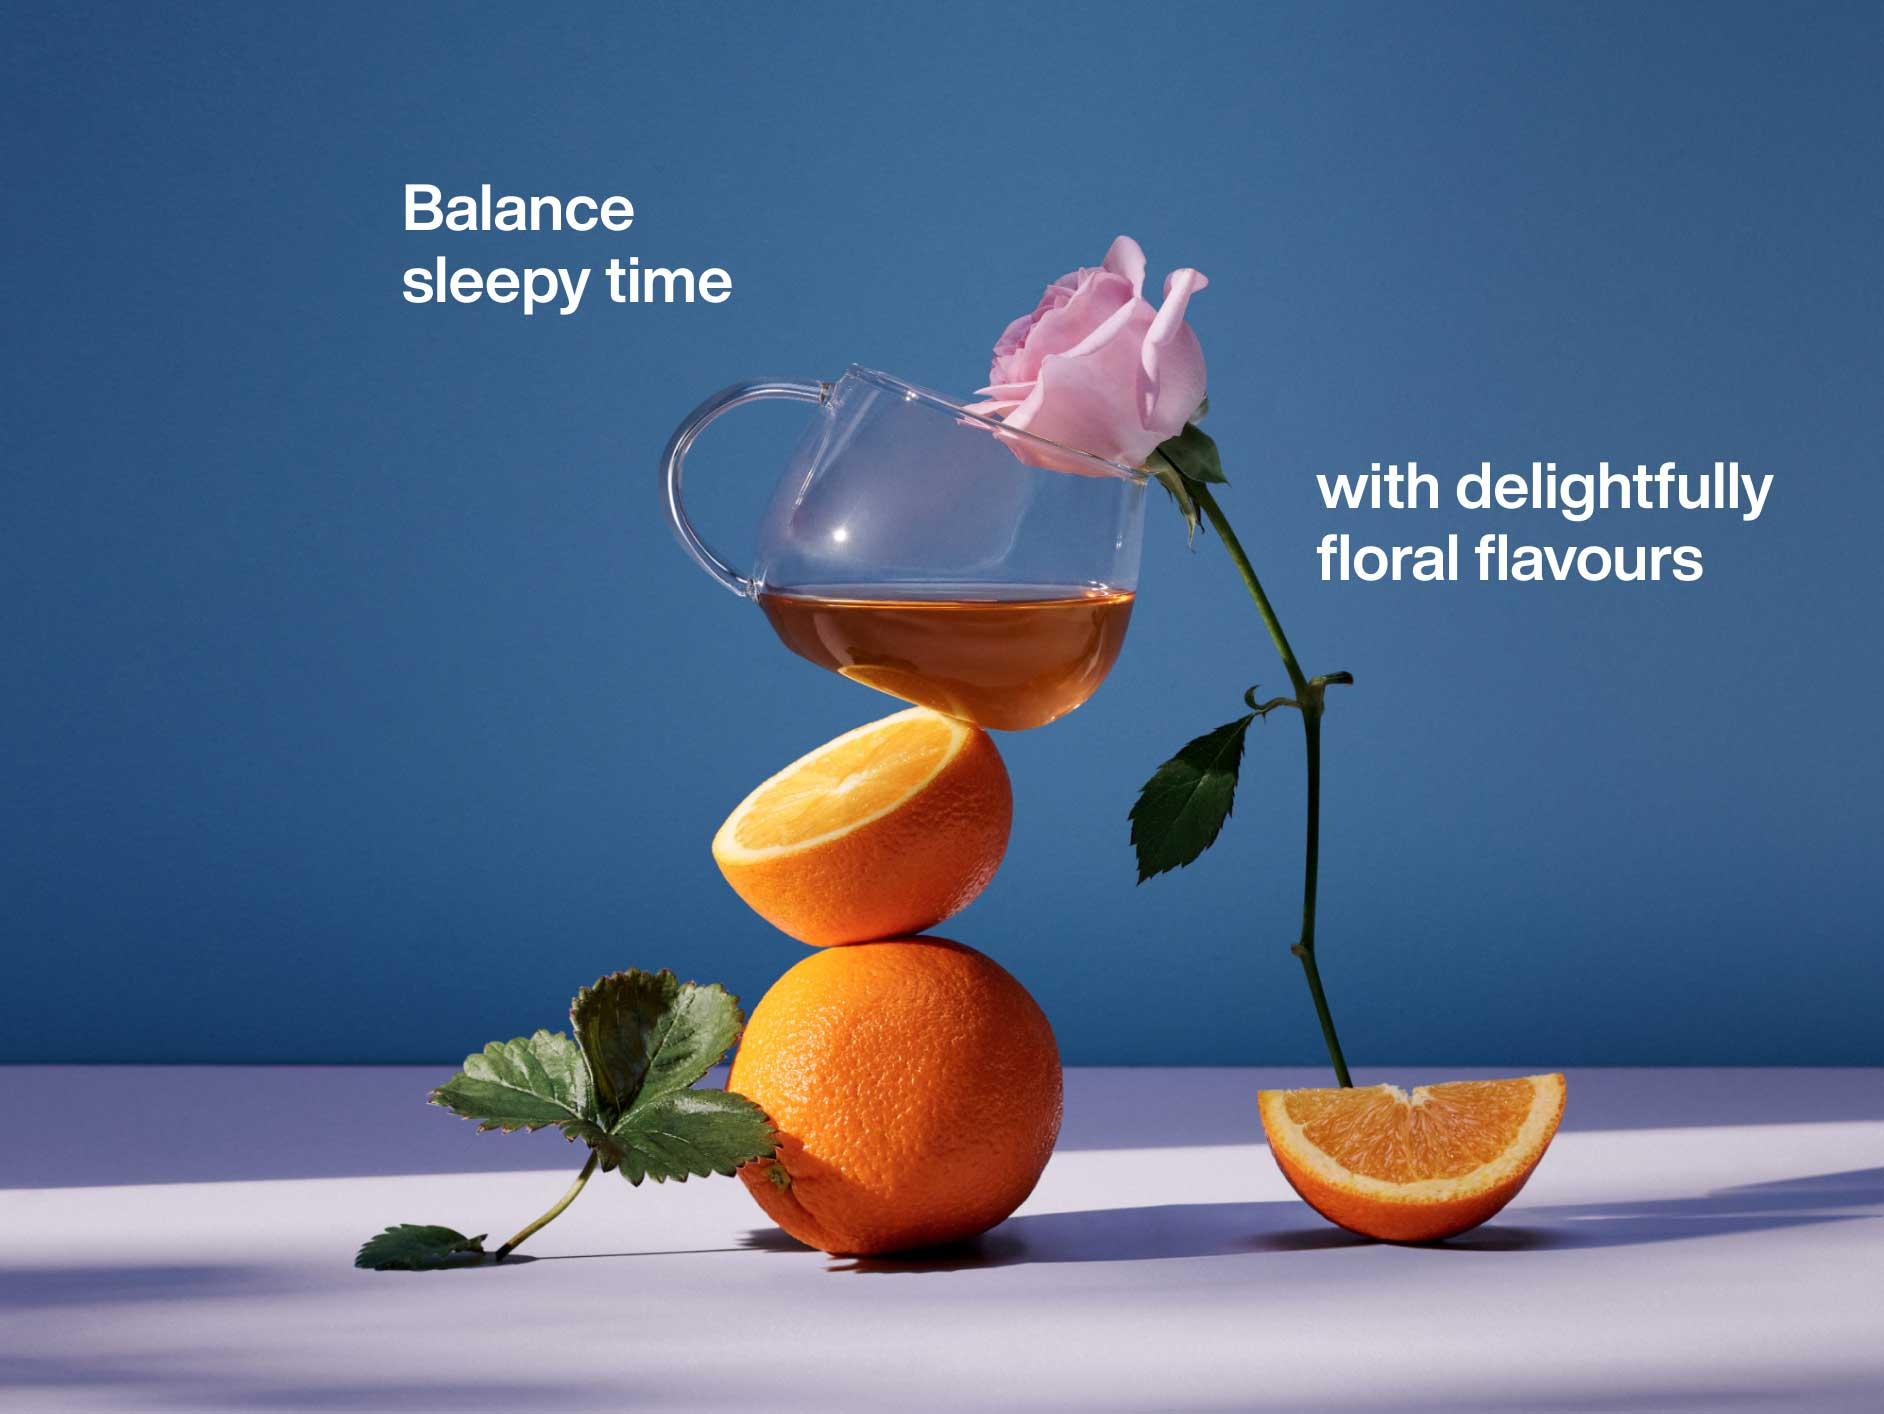 A cup of tea balanced on a stack of oranges